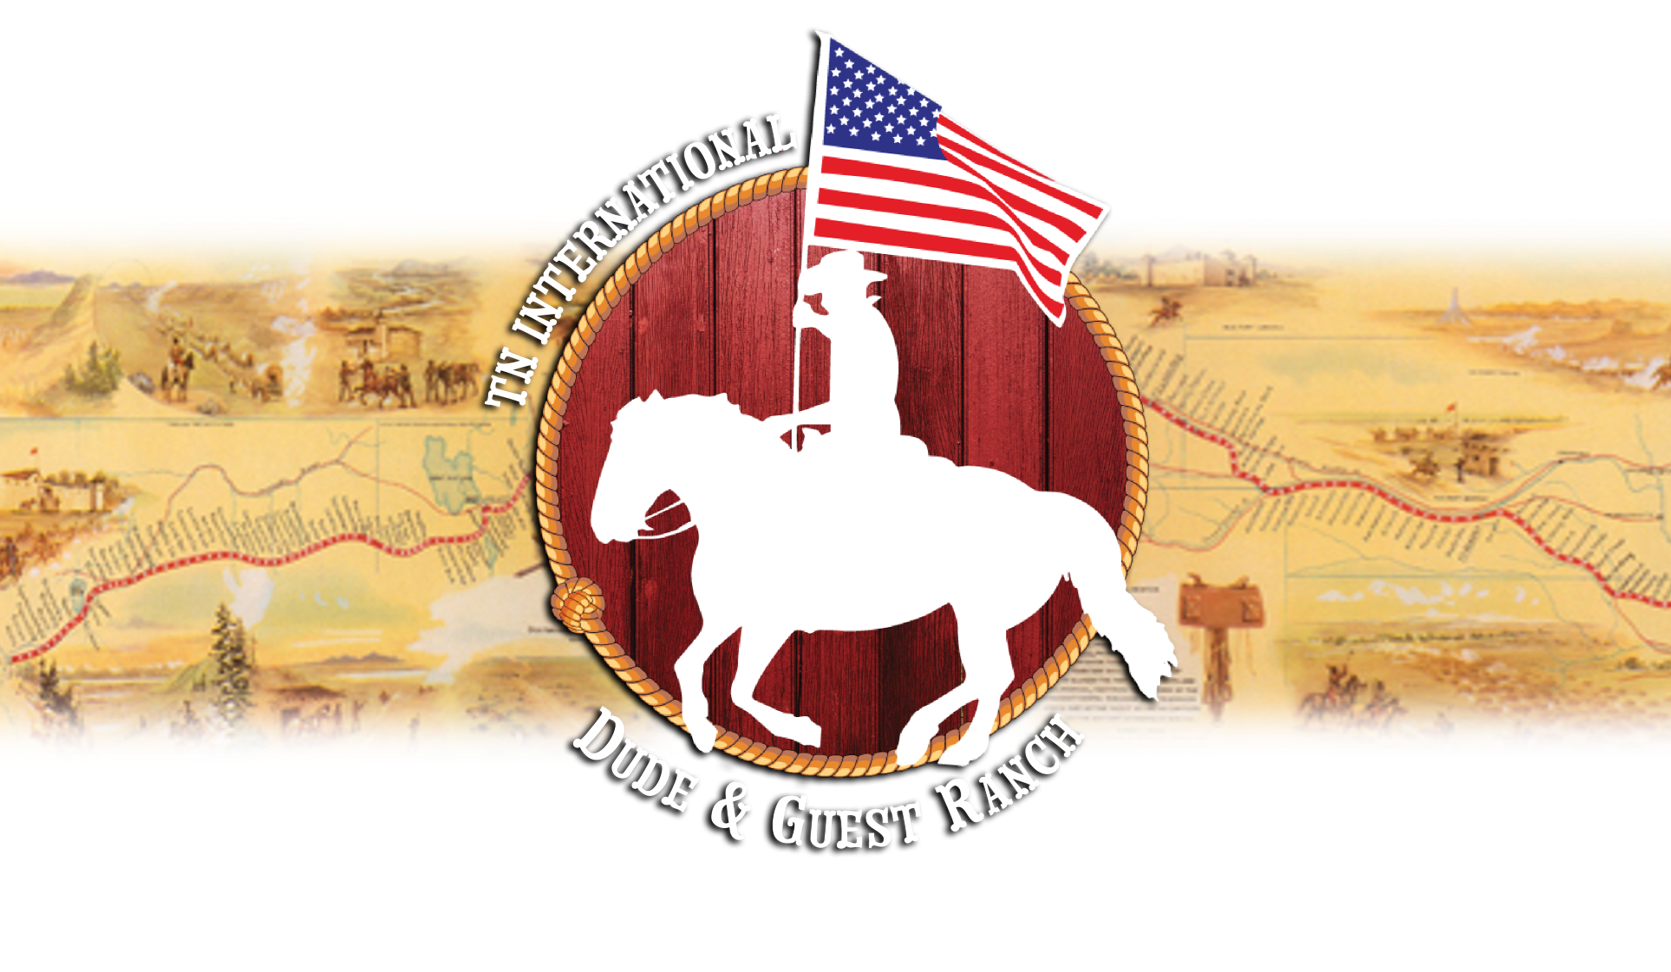 Uploaded by Tennessee International Dude & Guest Ranch